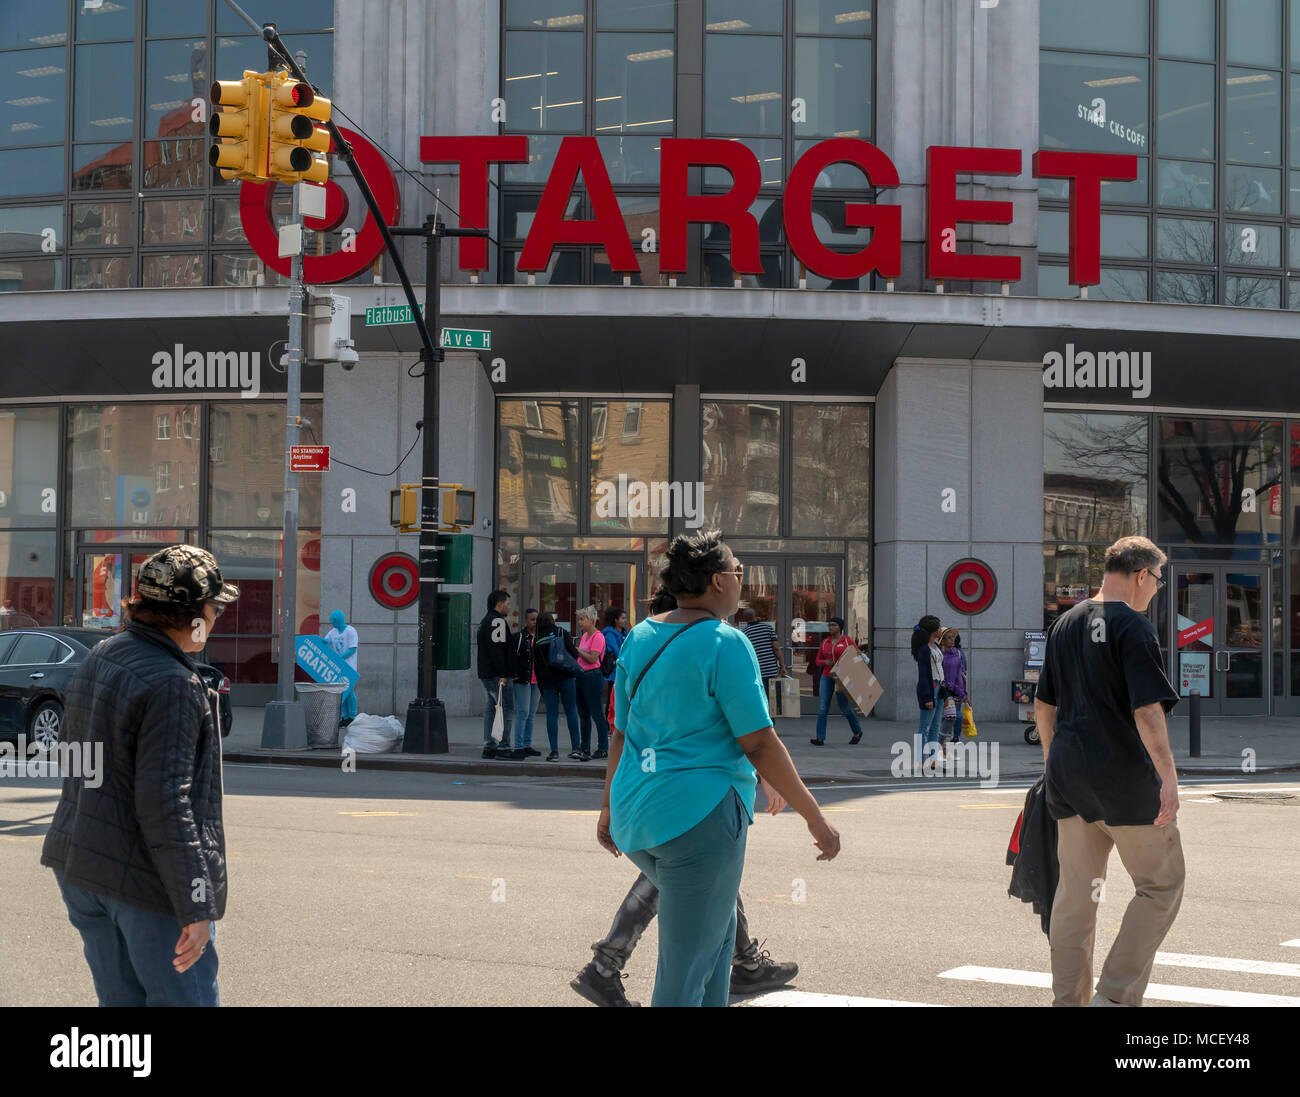 Shoppers Outside A Target Store On Flatbush Avenue In The Flatbush